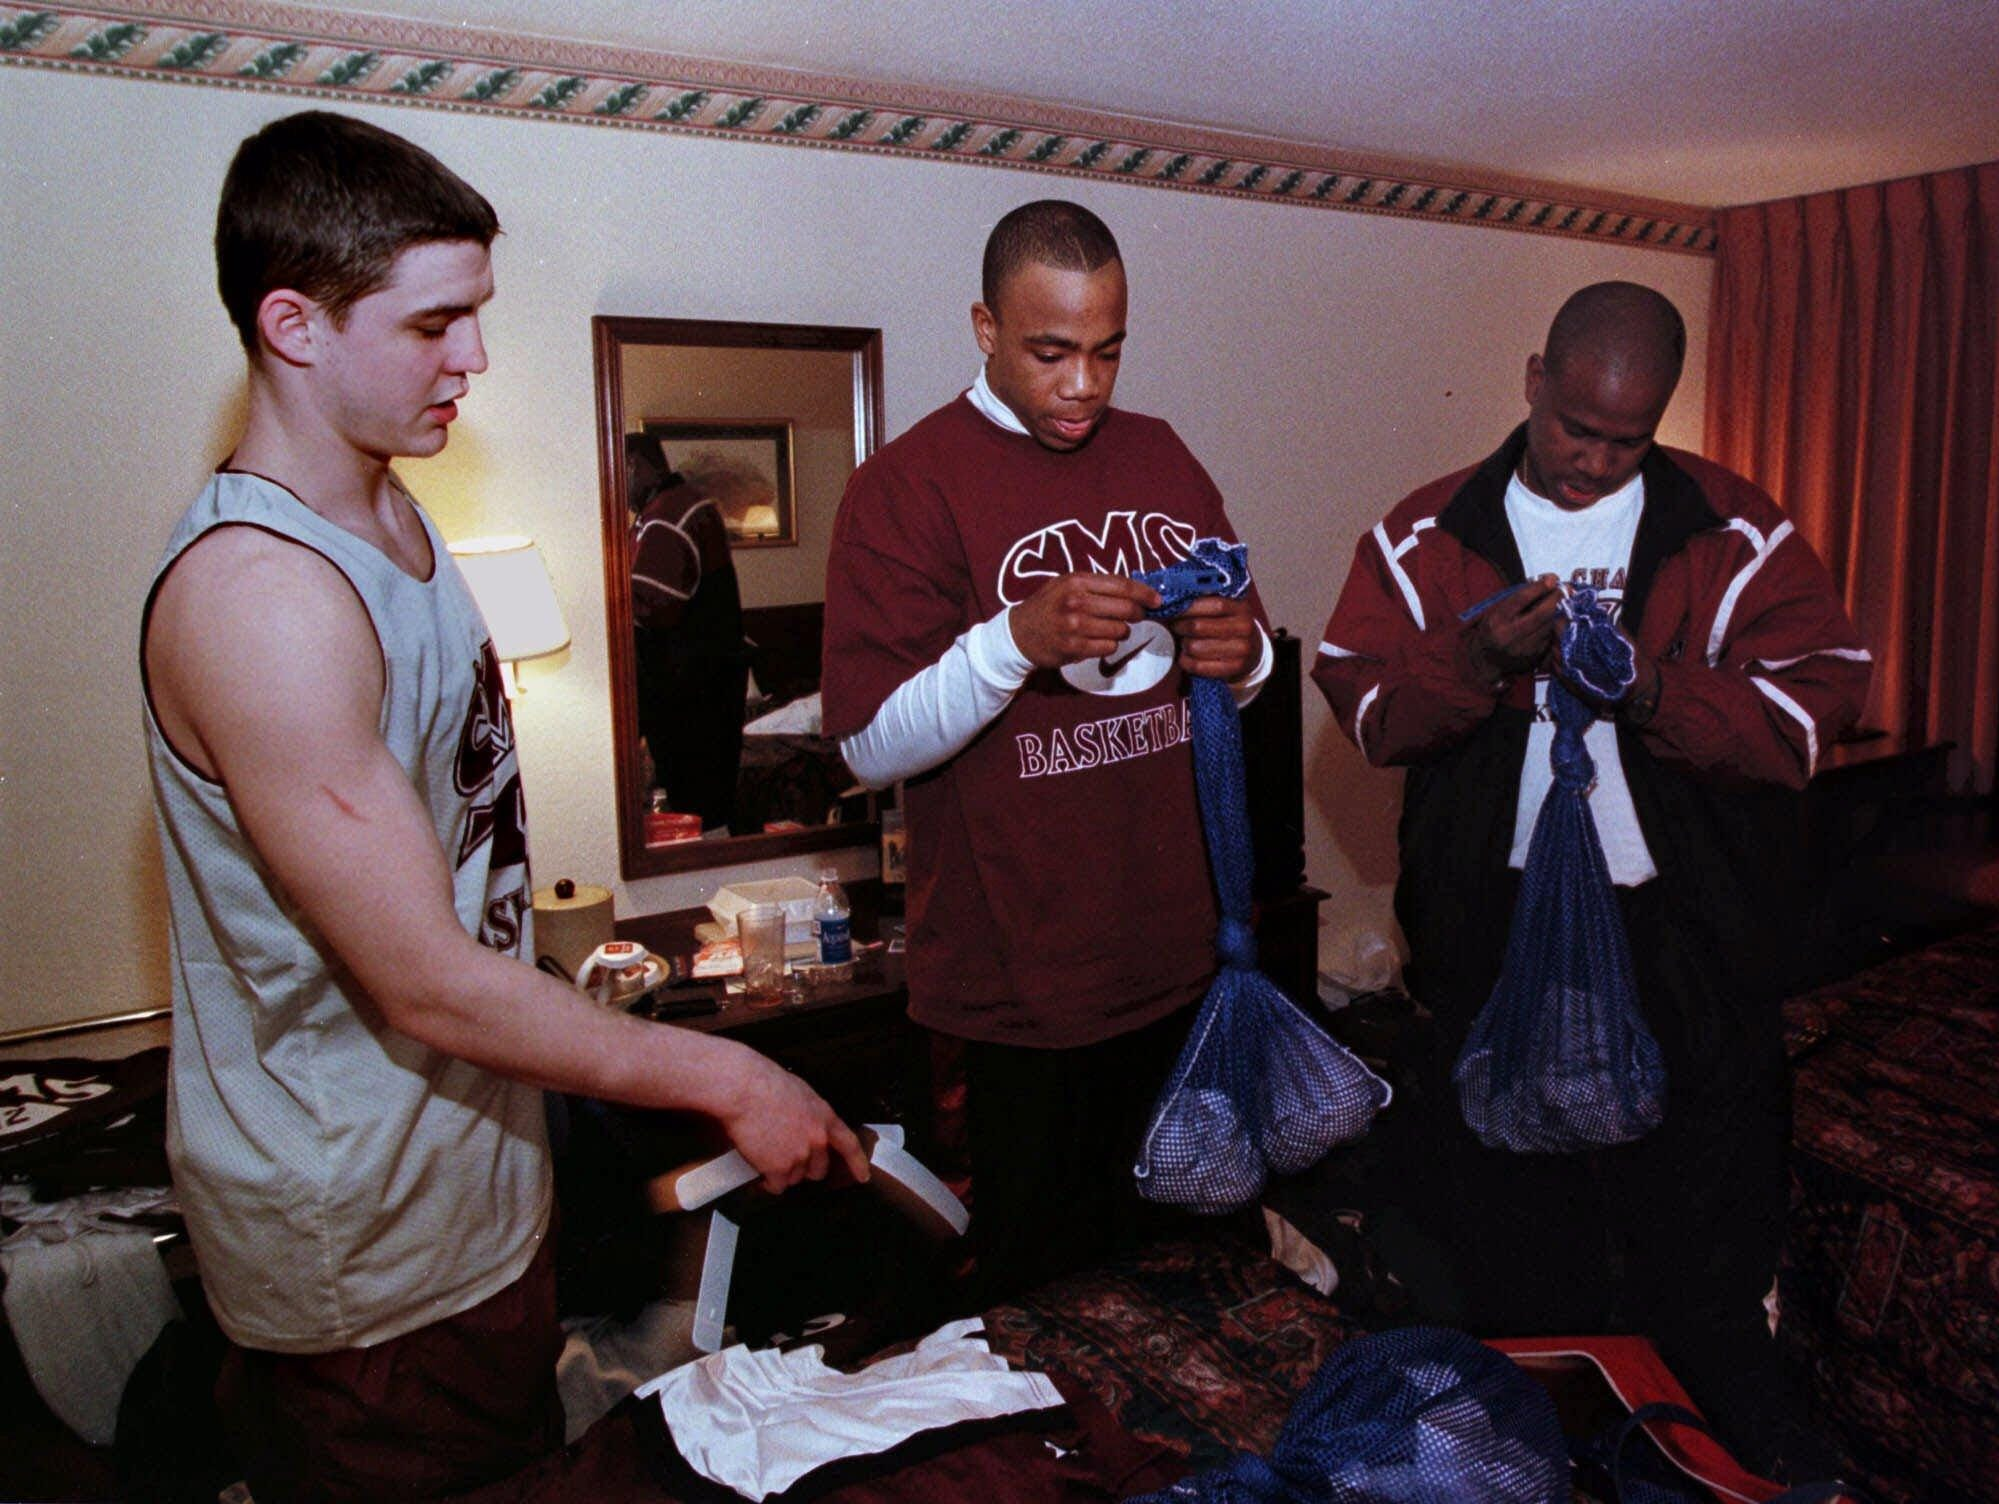 -  -SPECIAL TO THE SPRINGFIELD MISSOURI NEWS LEADER-- Southwest Missouri State basketball players Brandon Miller, left, and William Fontleroy, center, drop off dirty uniforms to team manager Mel Jessie, right, at the Clarion Hotel in Charlotte, N.C., Saturday, March 13, 1999. (Photo by Kevin White)